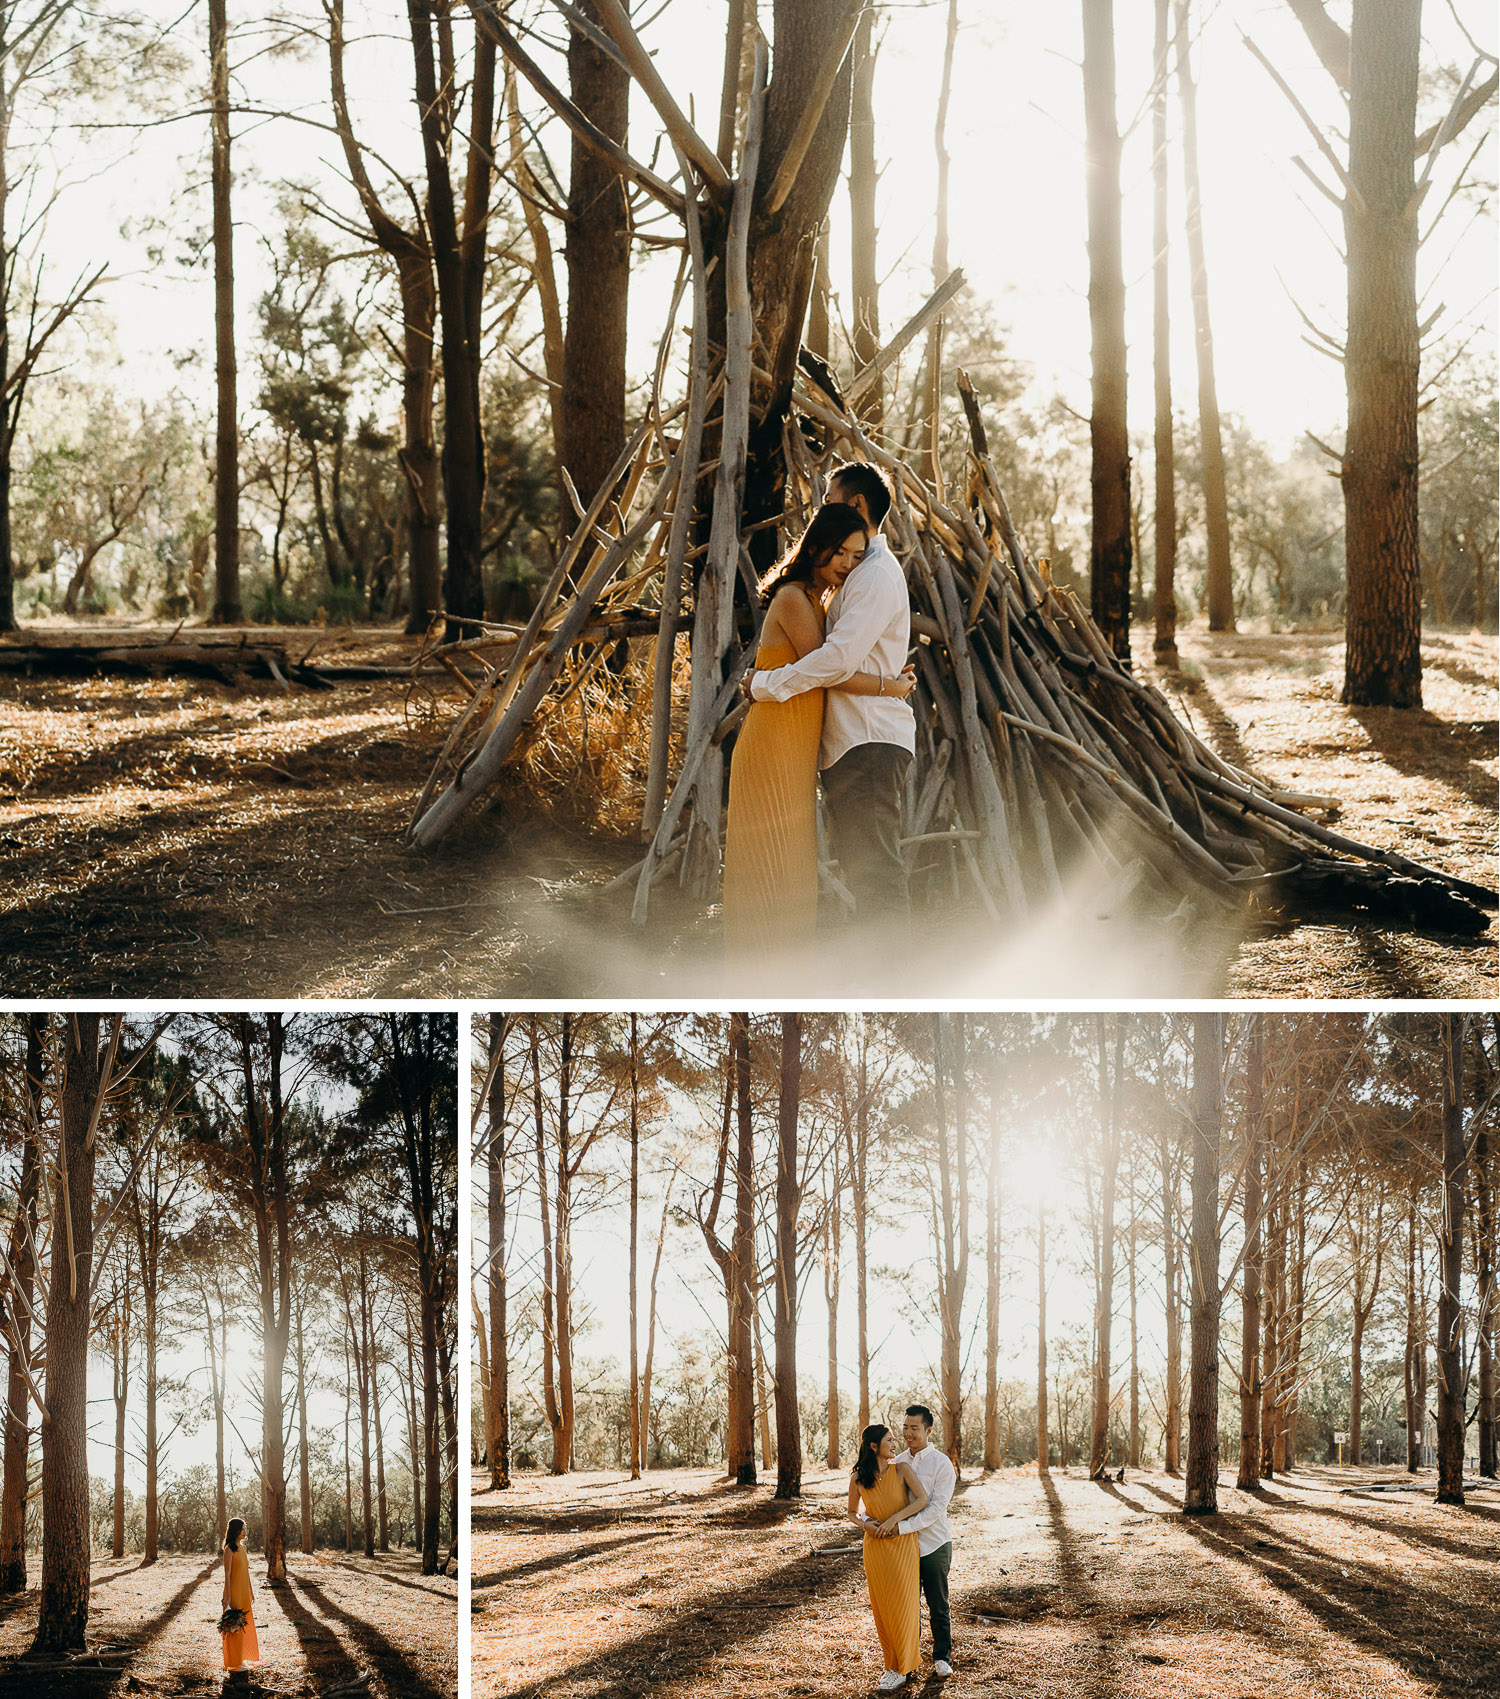 Couple photoshoot in pine forest, casual prewed and engagement photoshoot in pine forest, sunset in pine forest, casual photoshoot during sunset in pine forest, couple hugging in pine forest